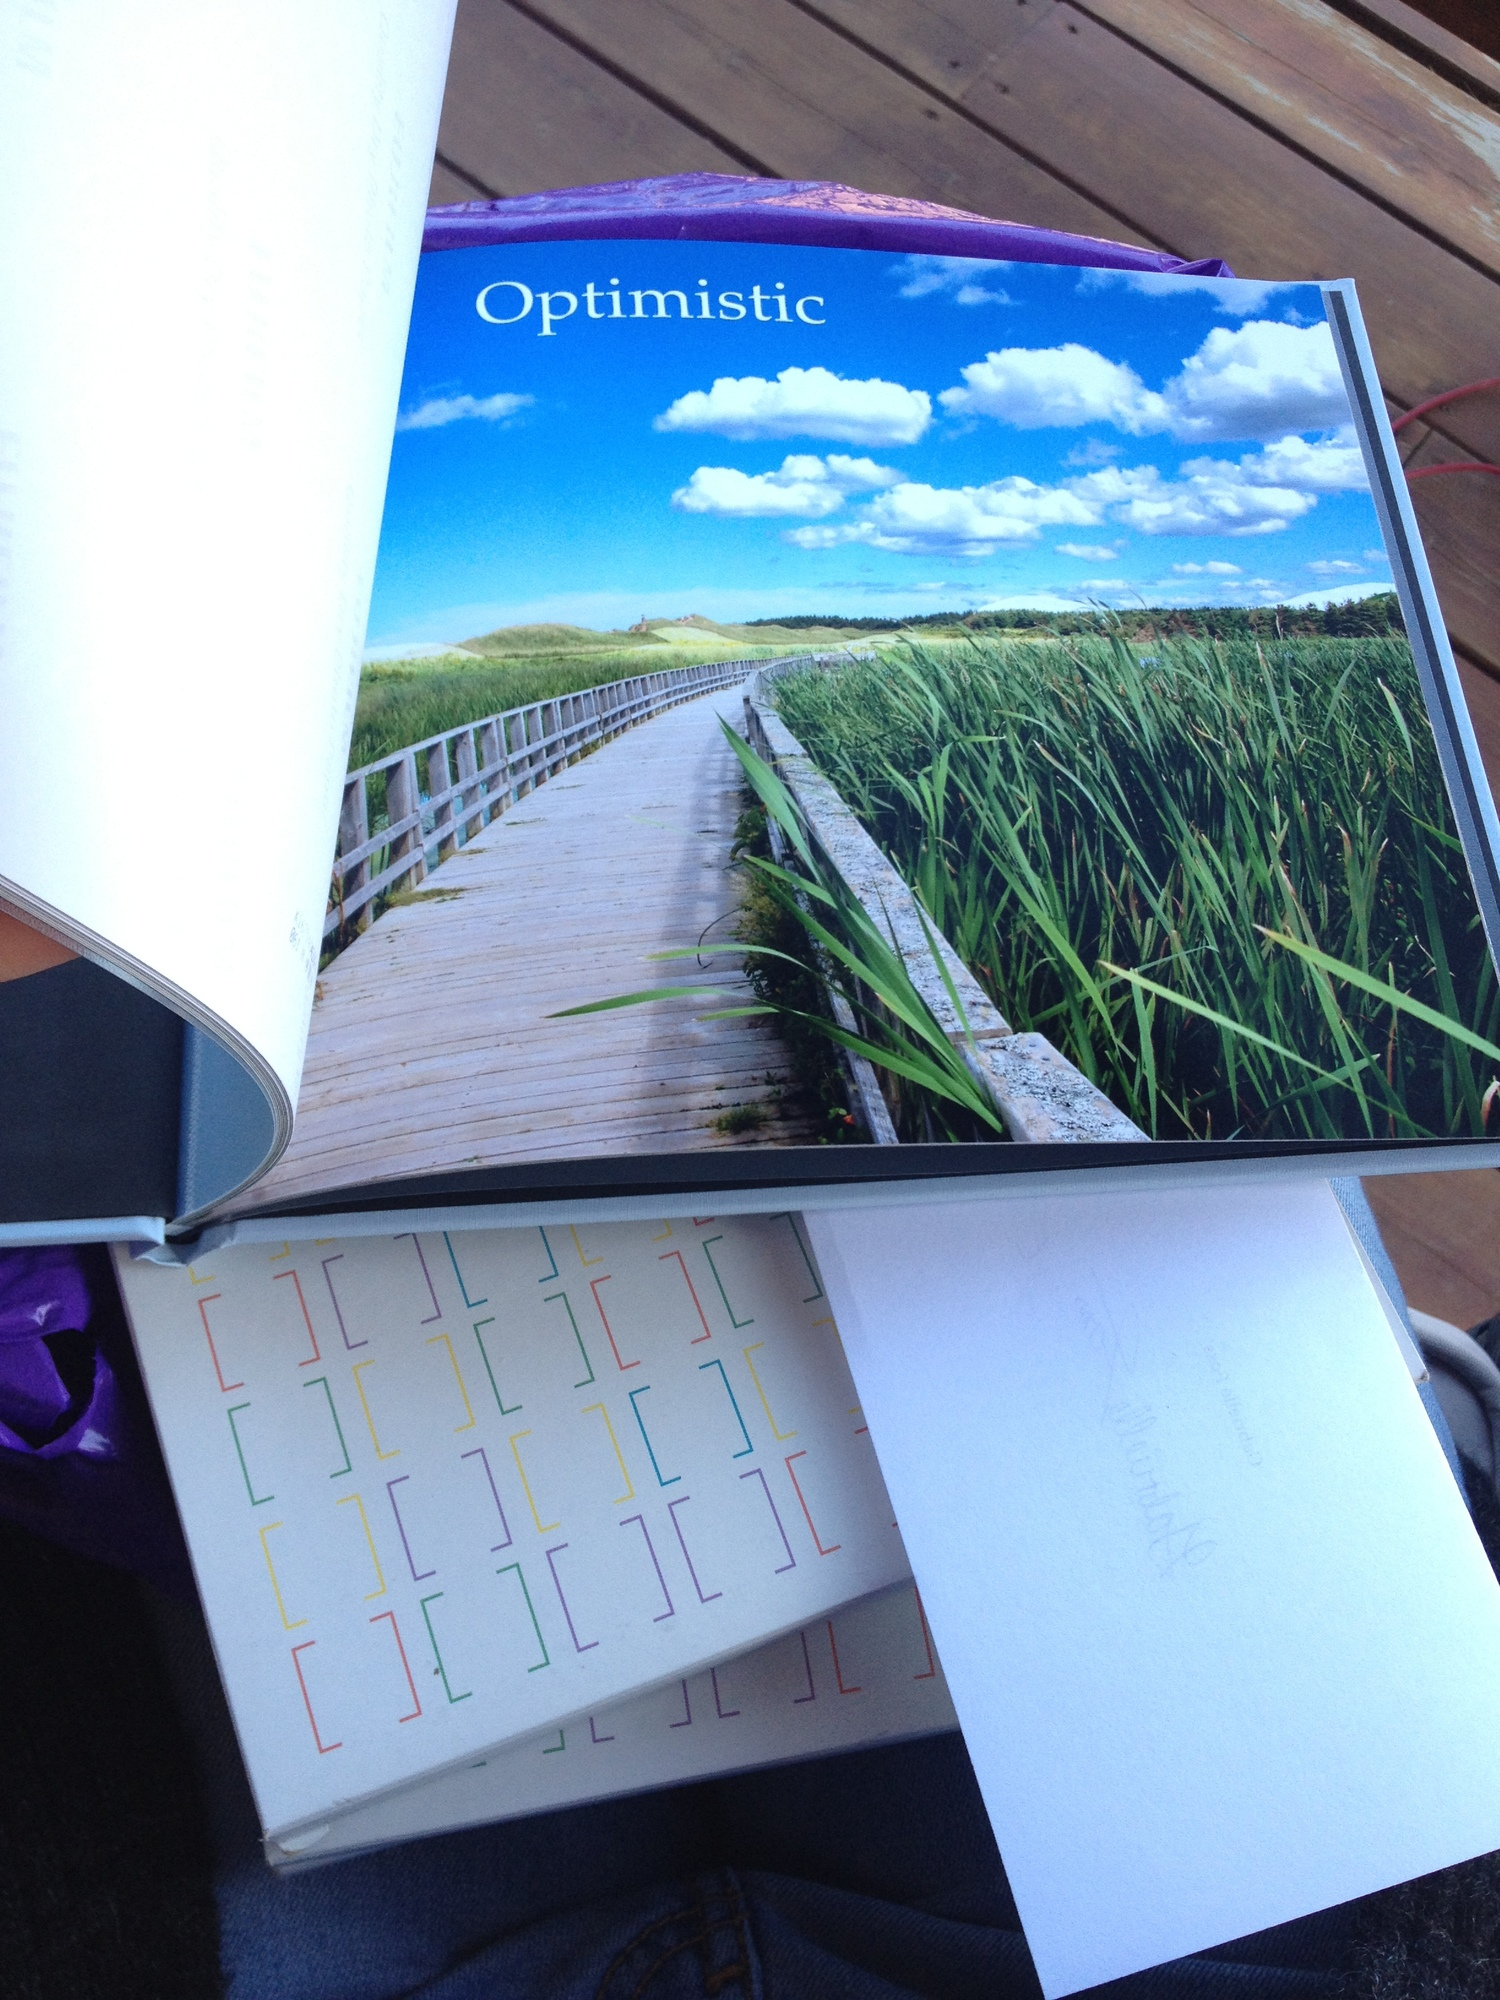 Another of the photobooks, displaying an image inside.